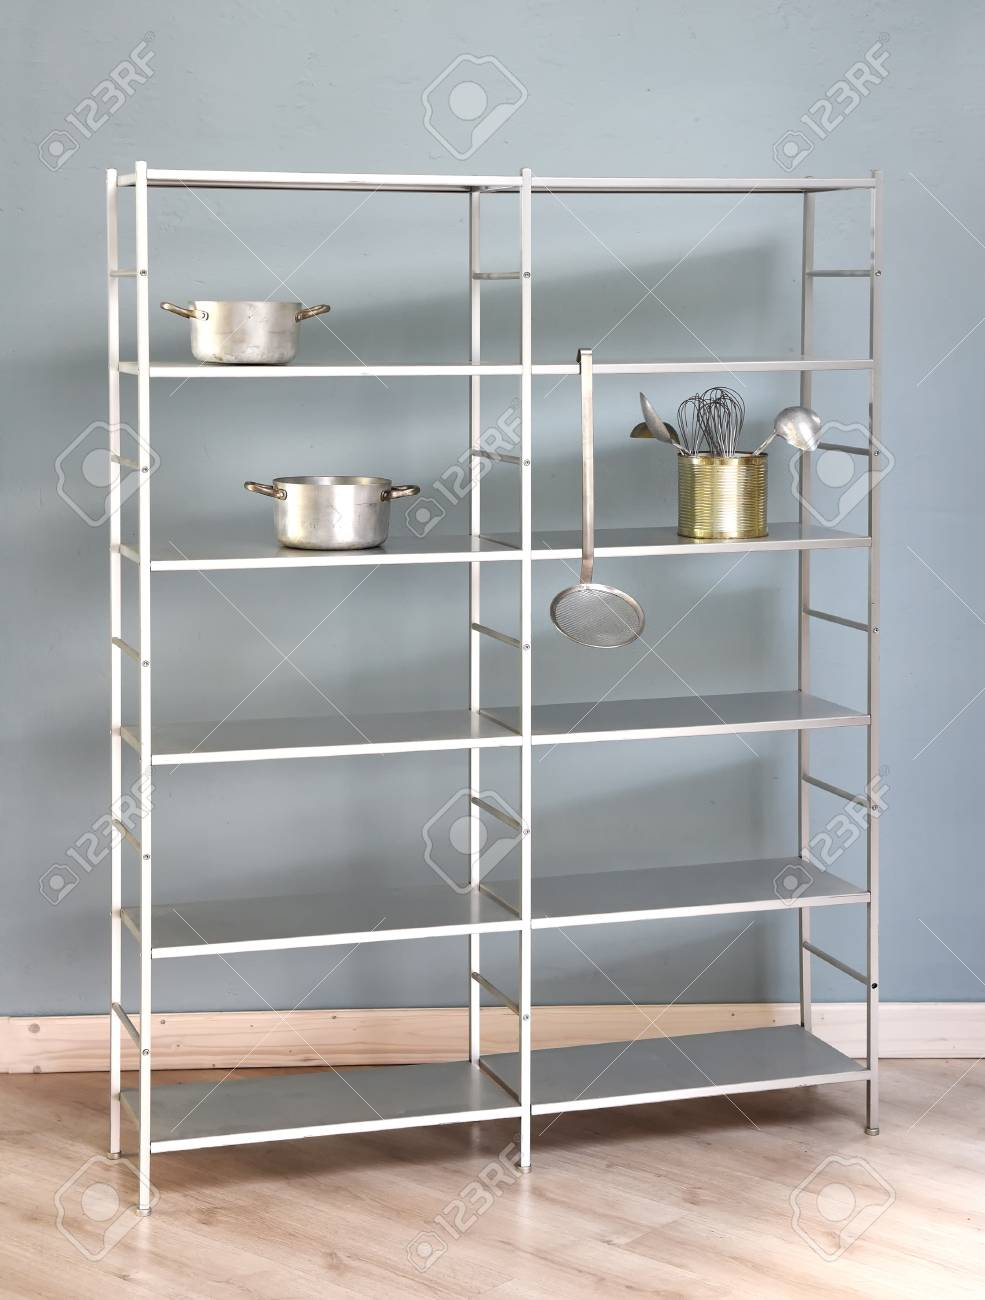 Simple Freestanding Kitchen Shelf With Metal Frame And Shelves